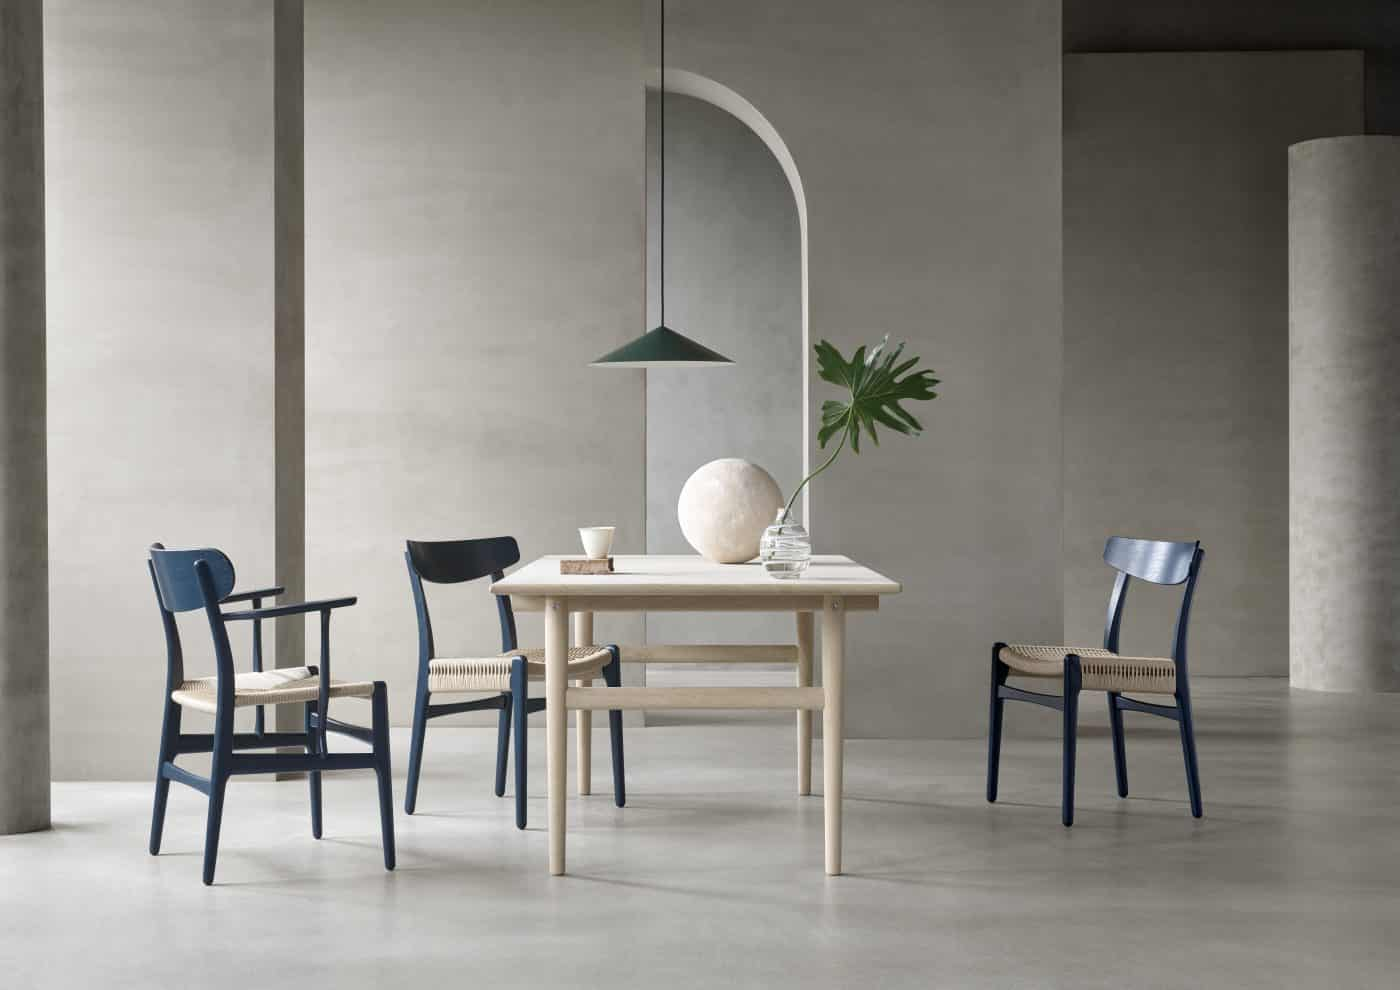 CH26 (far left) and CH23 dining chairs in North Sea blue by Hans J. Wegner and Ilse Crawford